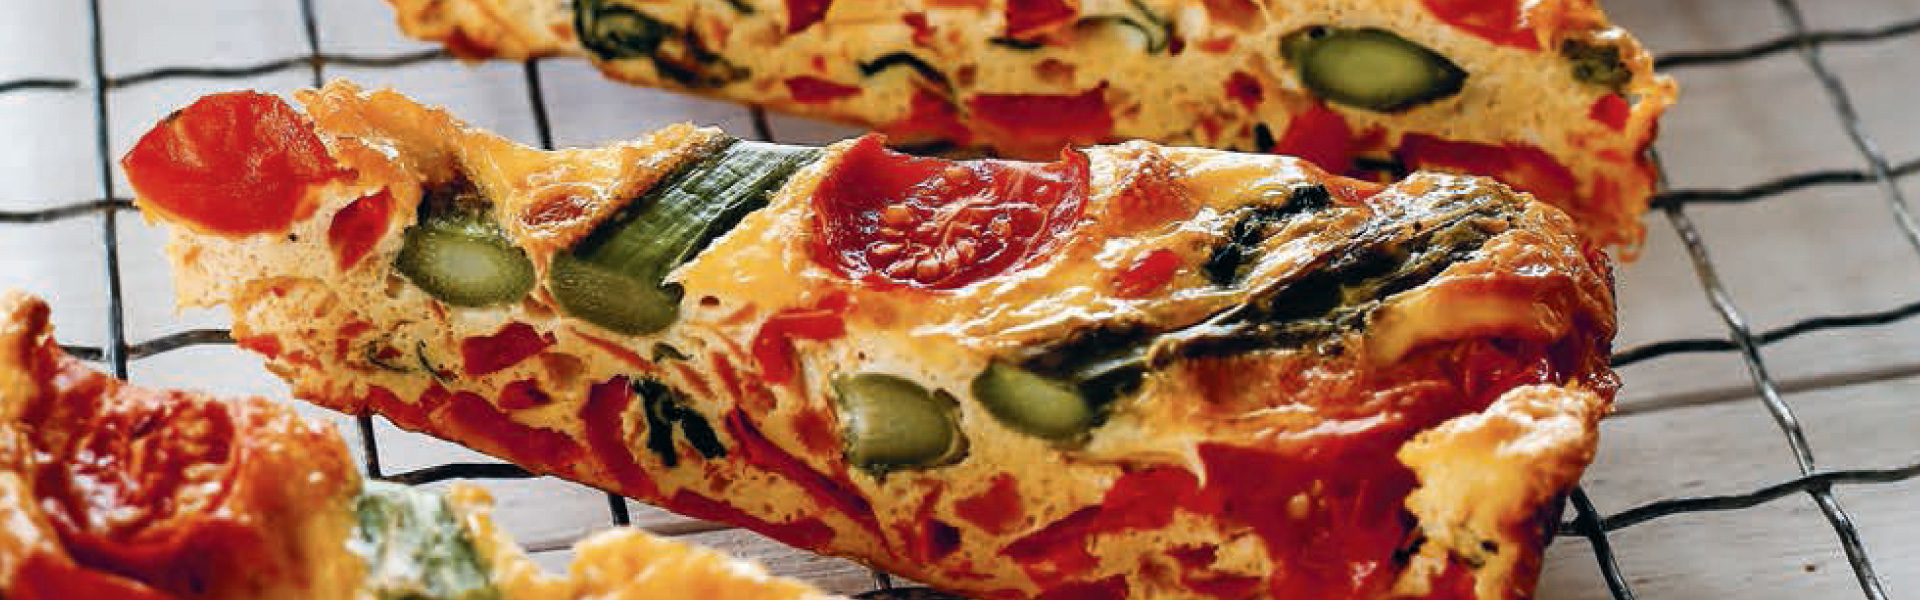 The Foodie Teen: Asparagus and Tomato Frittata Slice Recipe